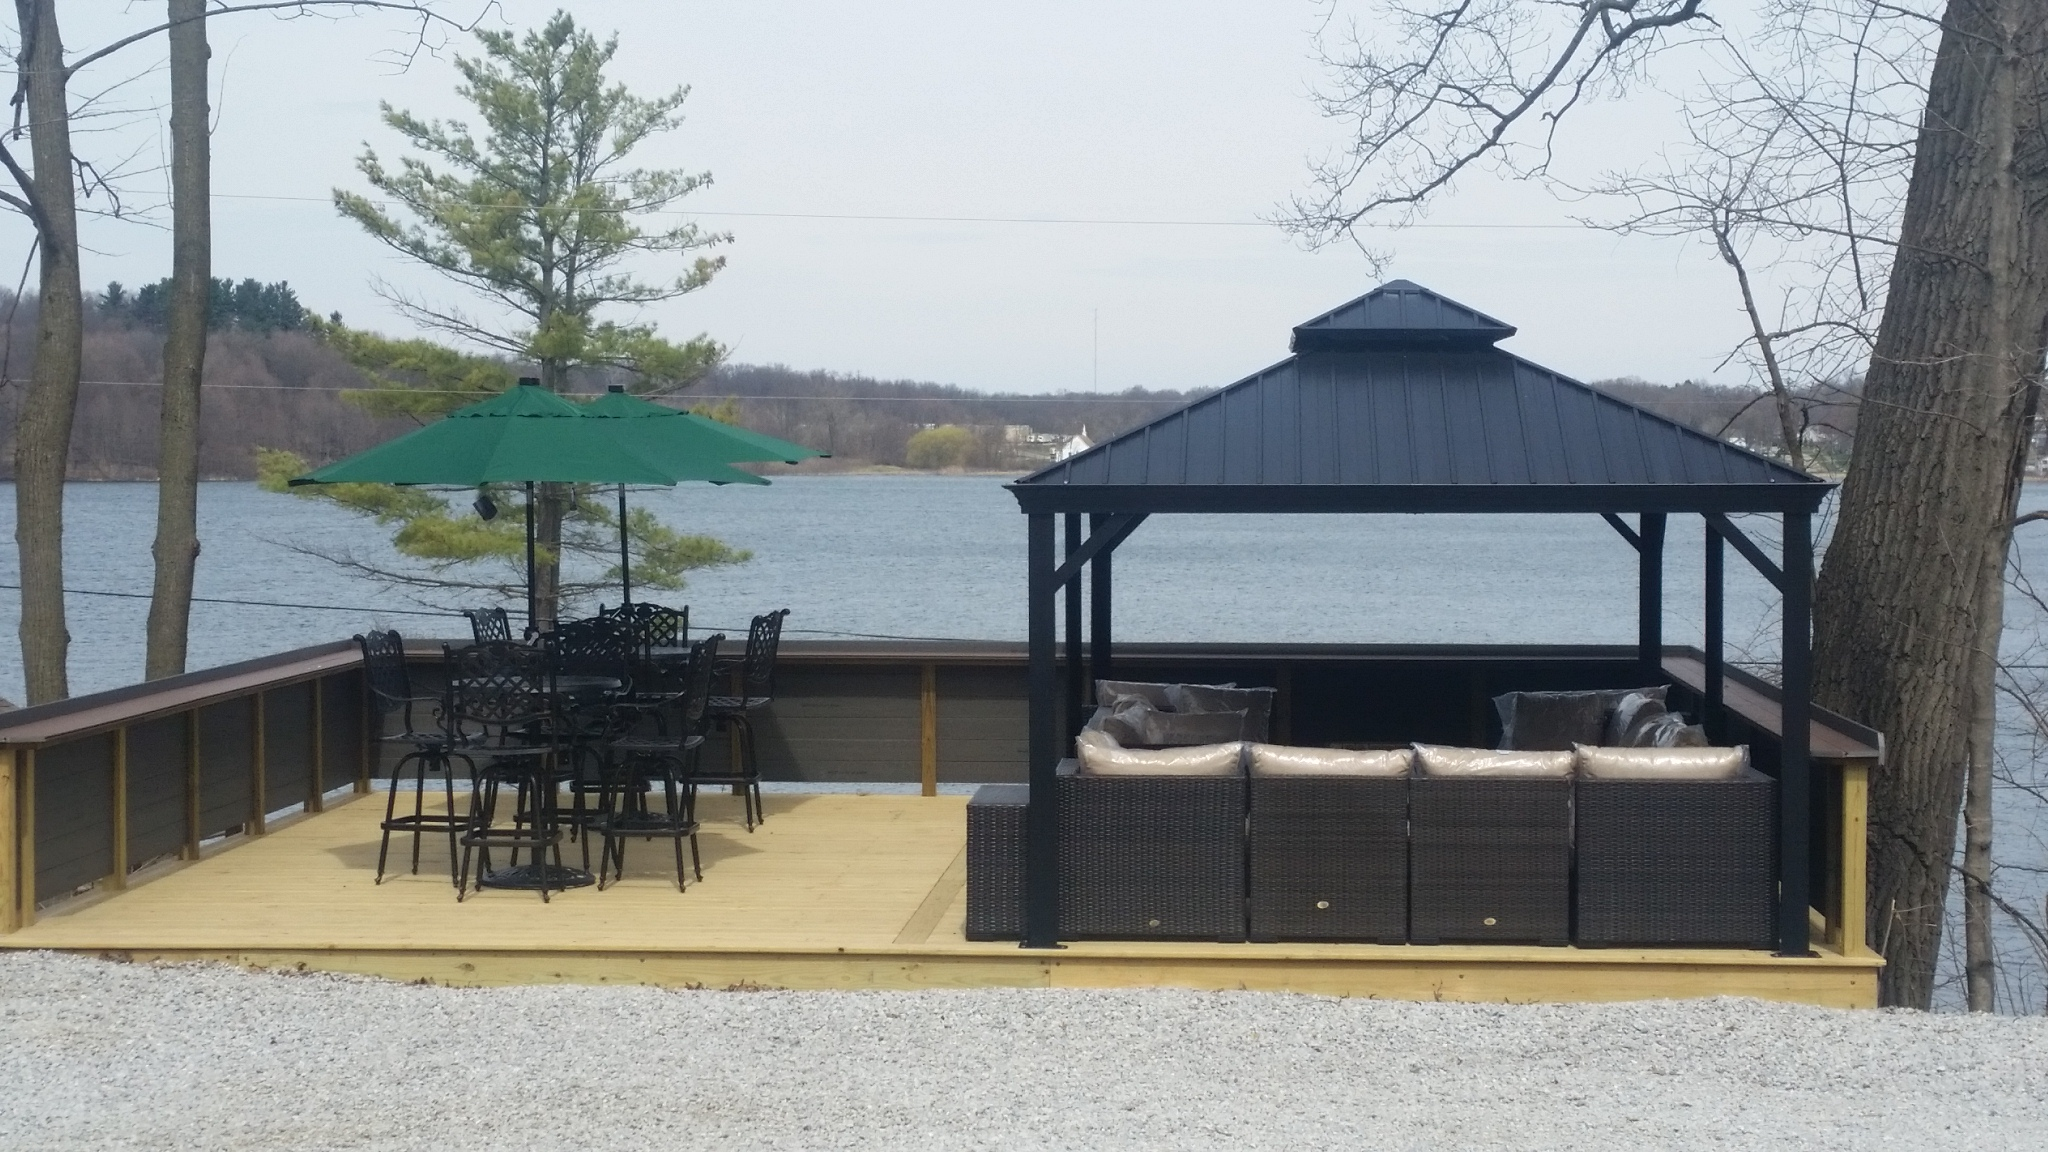 The Woodland Lodge's new 756ft² deck with 12x20' gazebo & seating for 22+ friends and family.